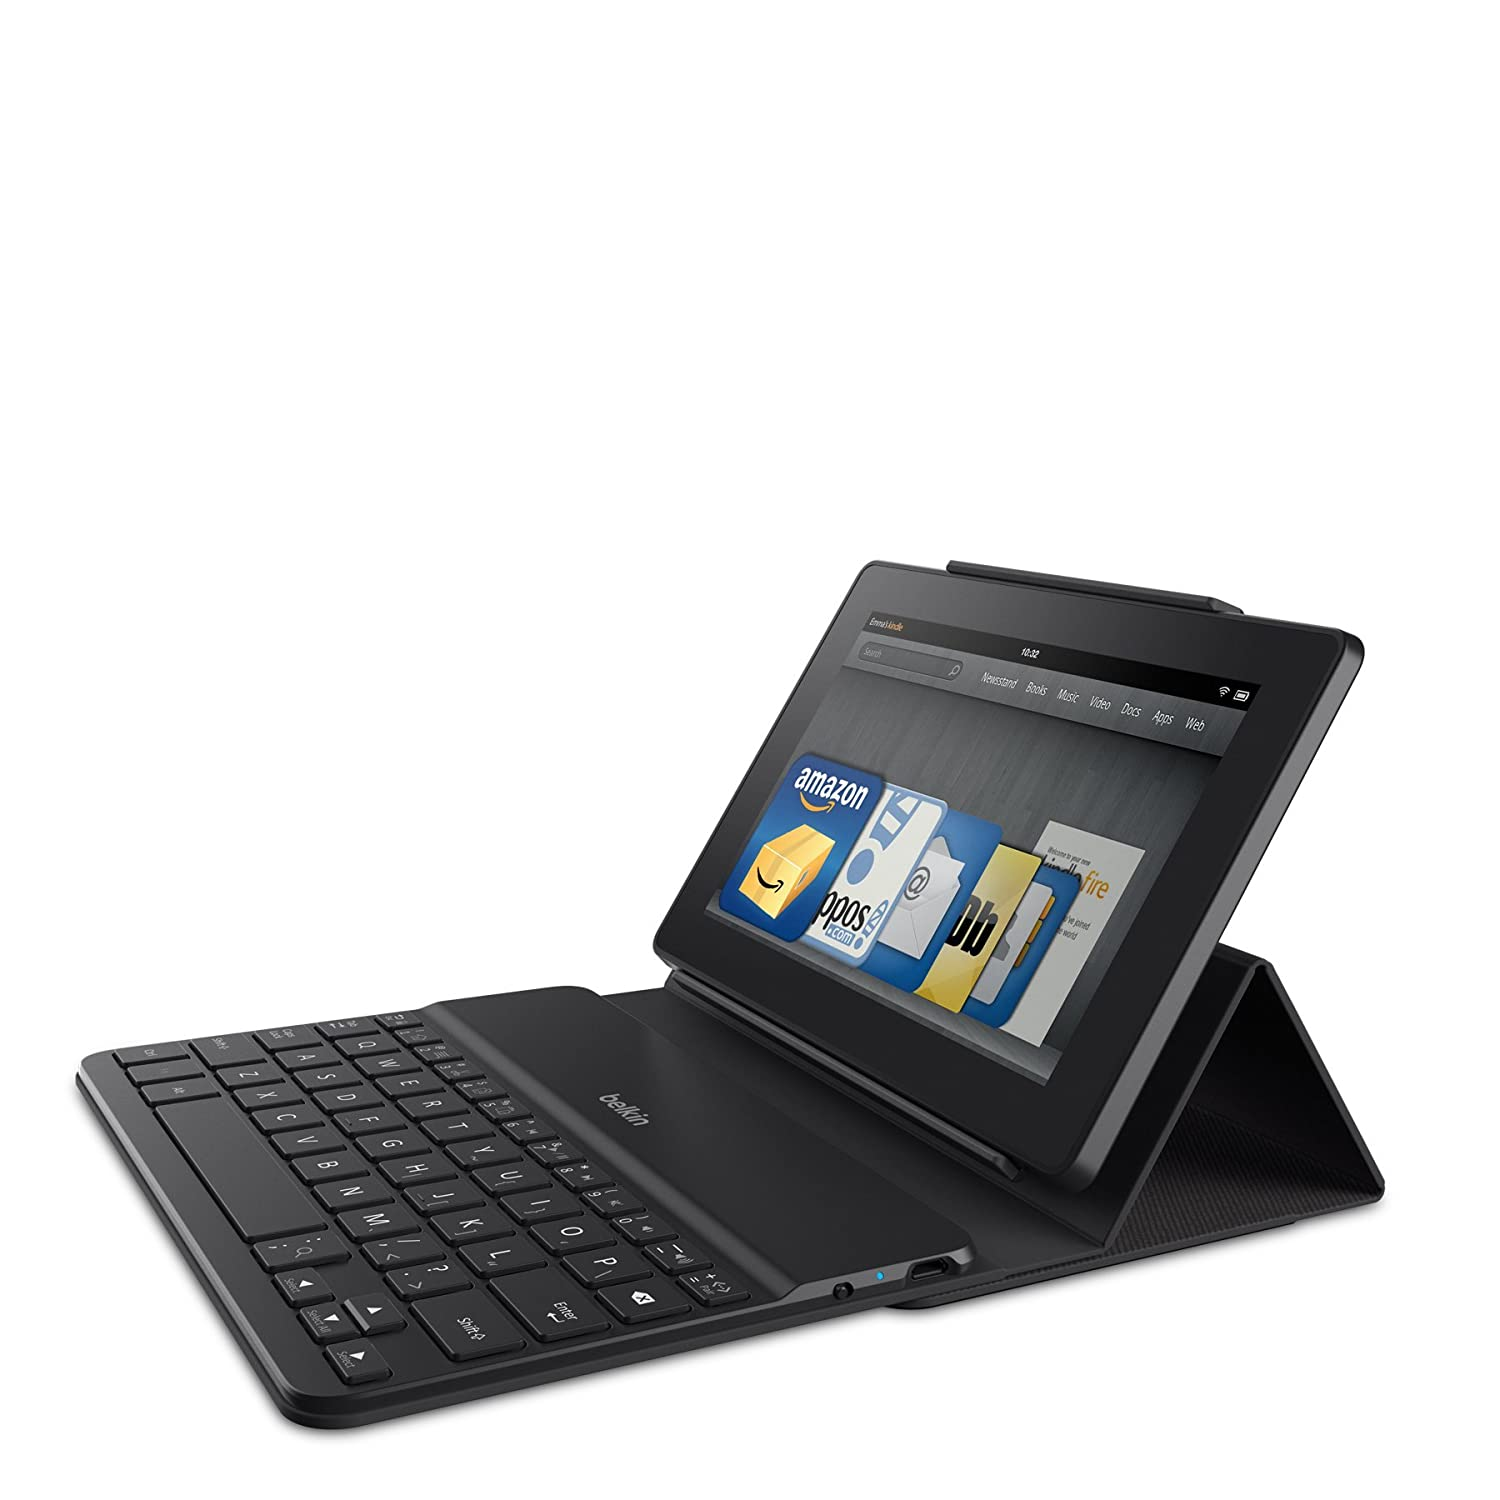 Belkin Kindle Keyboard Case for All New Kindle Fire HD 7 & HDX 7 (fits both devices) Belkin Inc. F5L164qttBLK